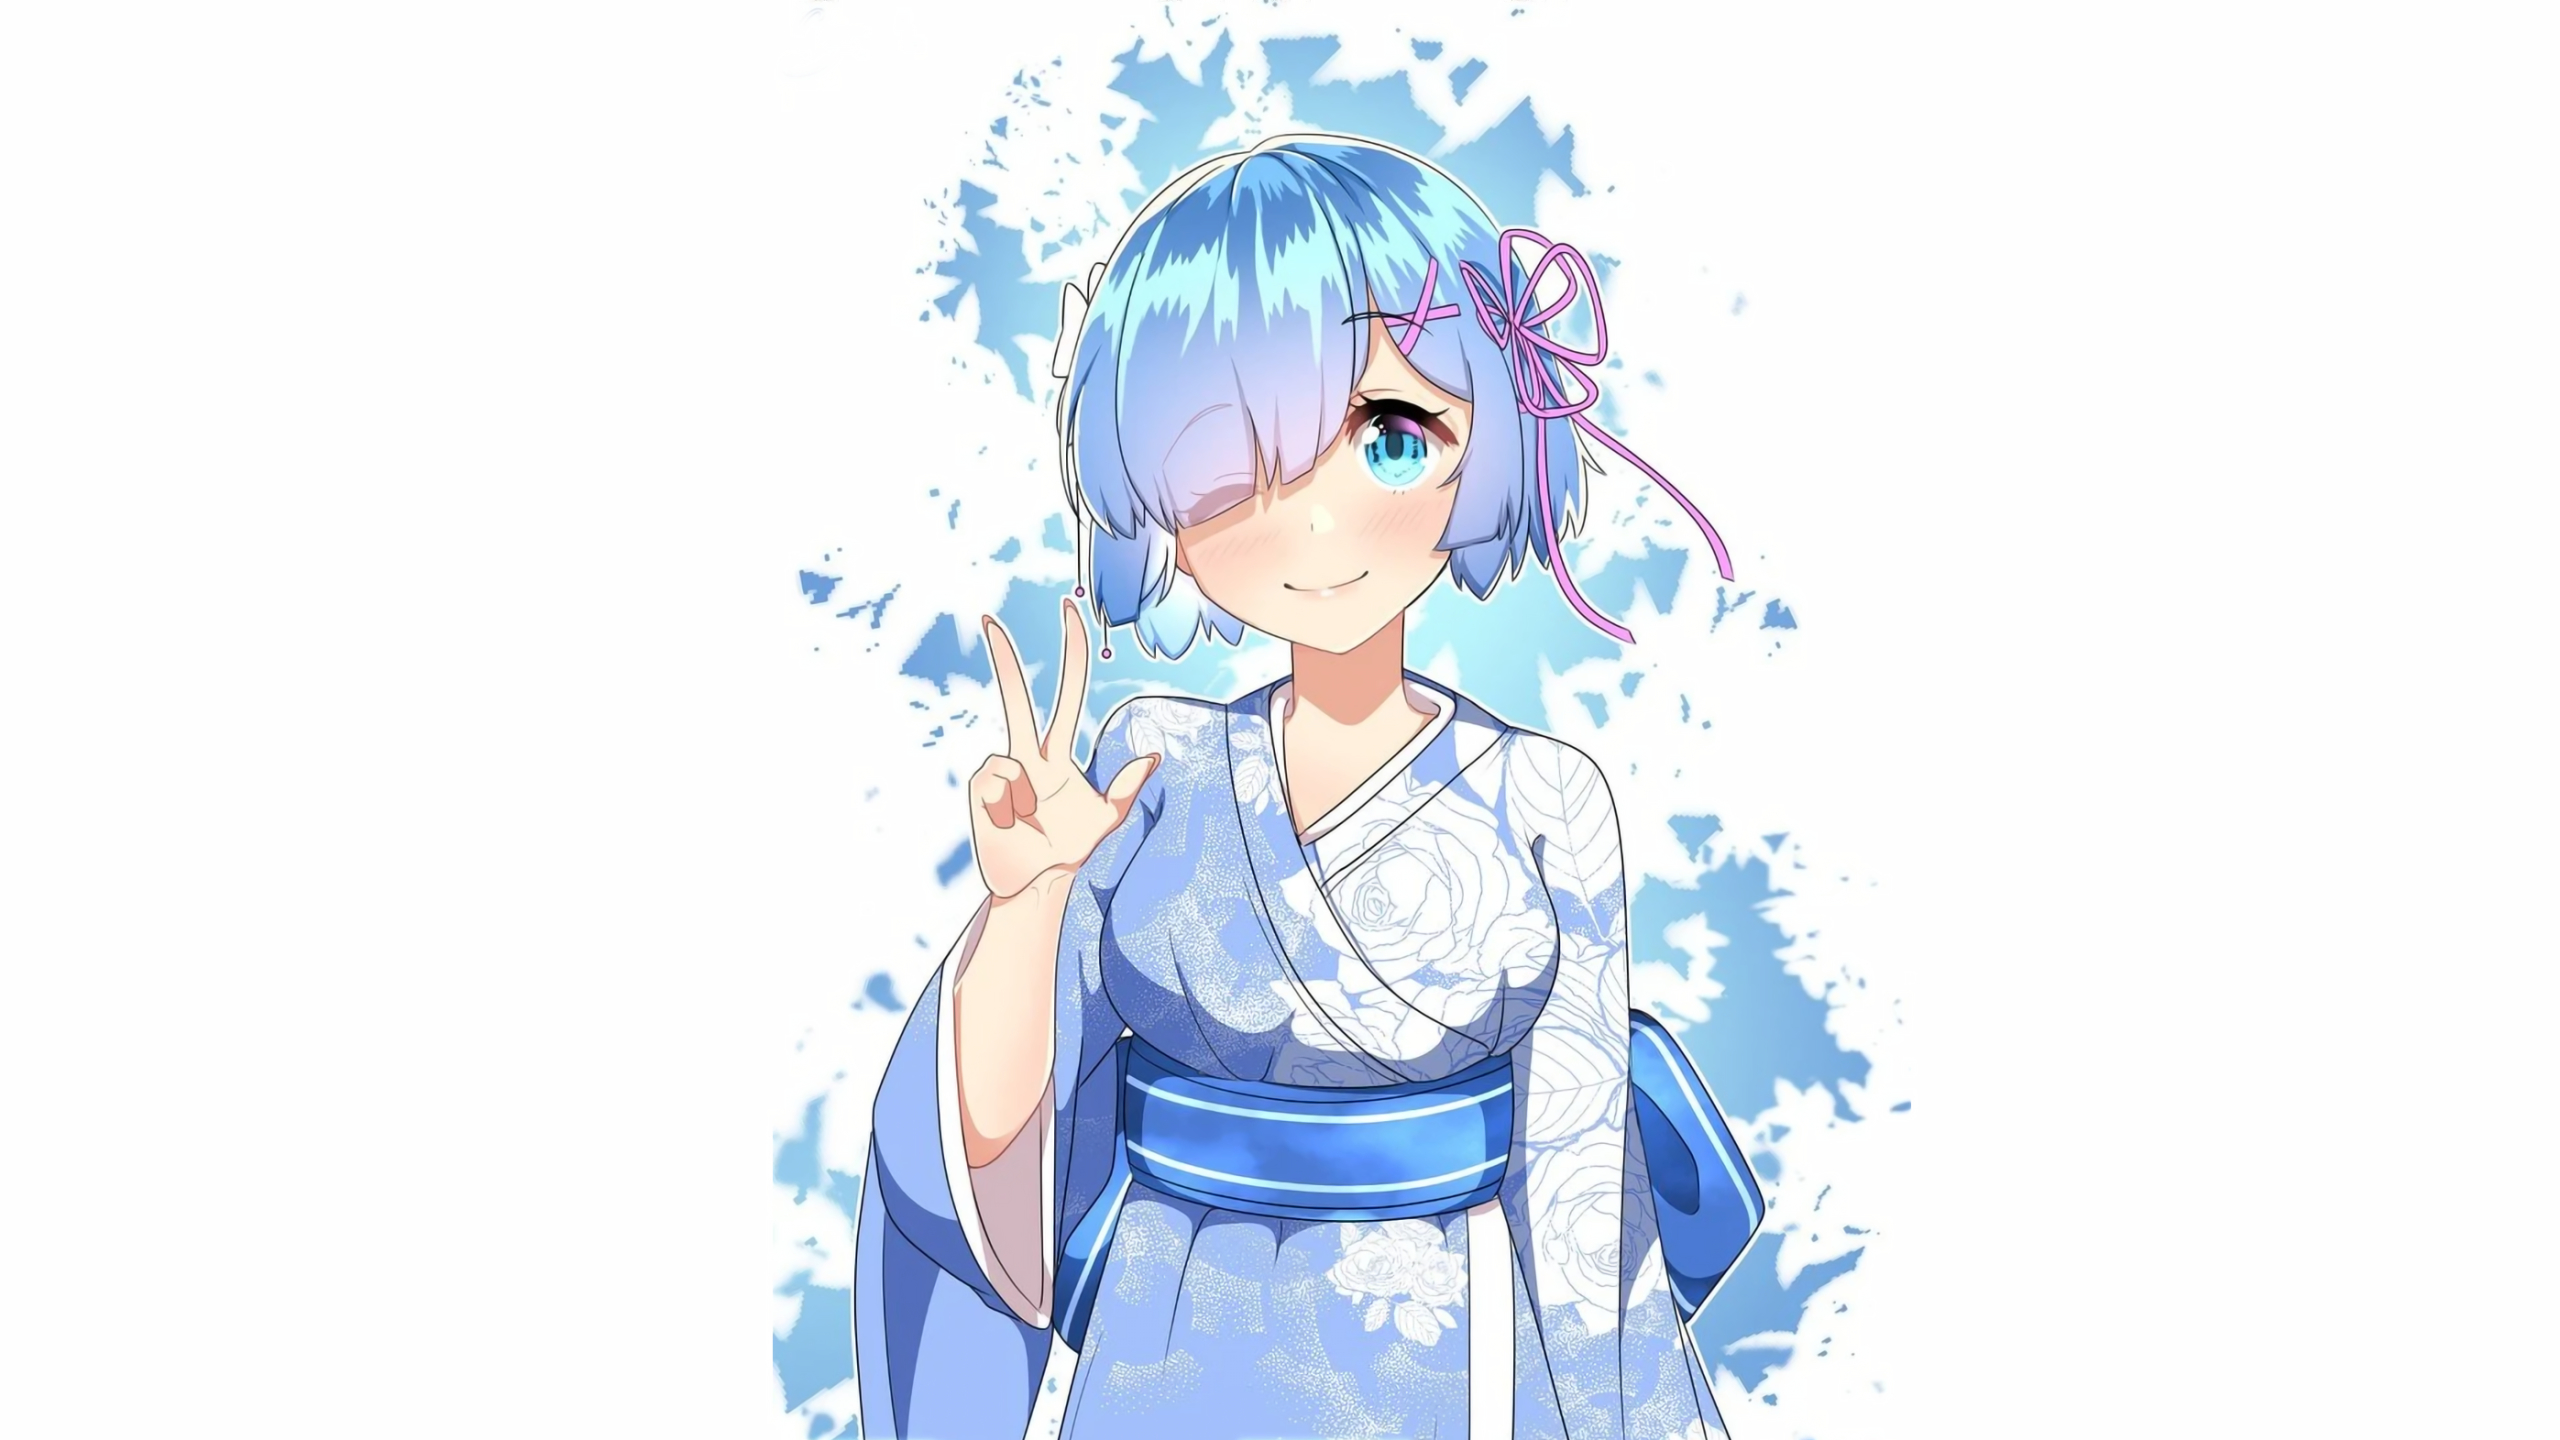 2560x1440 Rem 1440p Resolution Wallpaper Hd Anime 4k Wallpapers Images Photos And Background